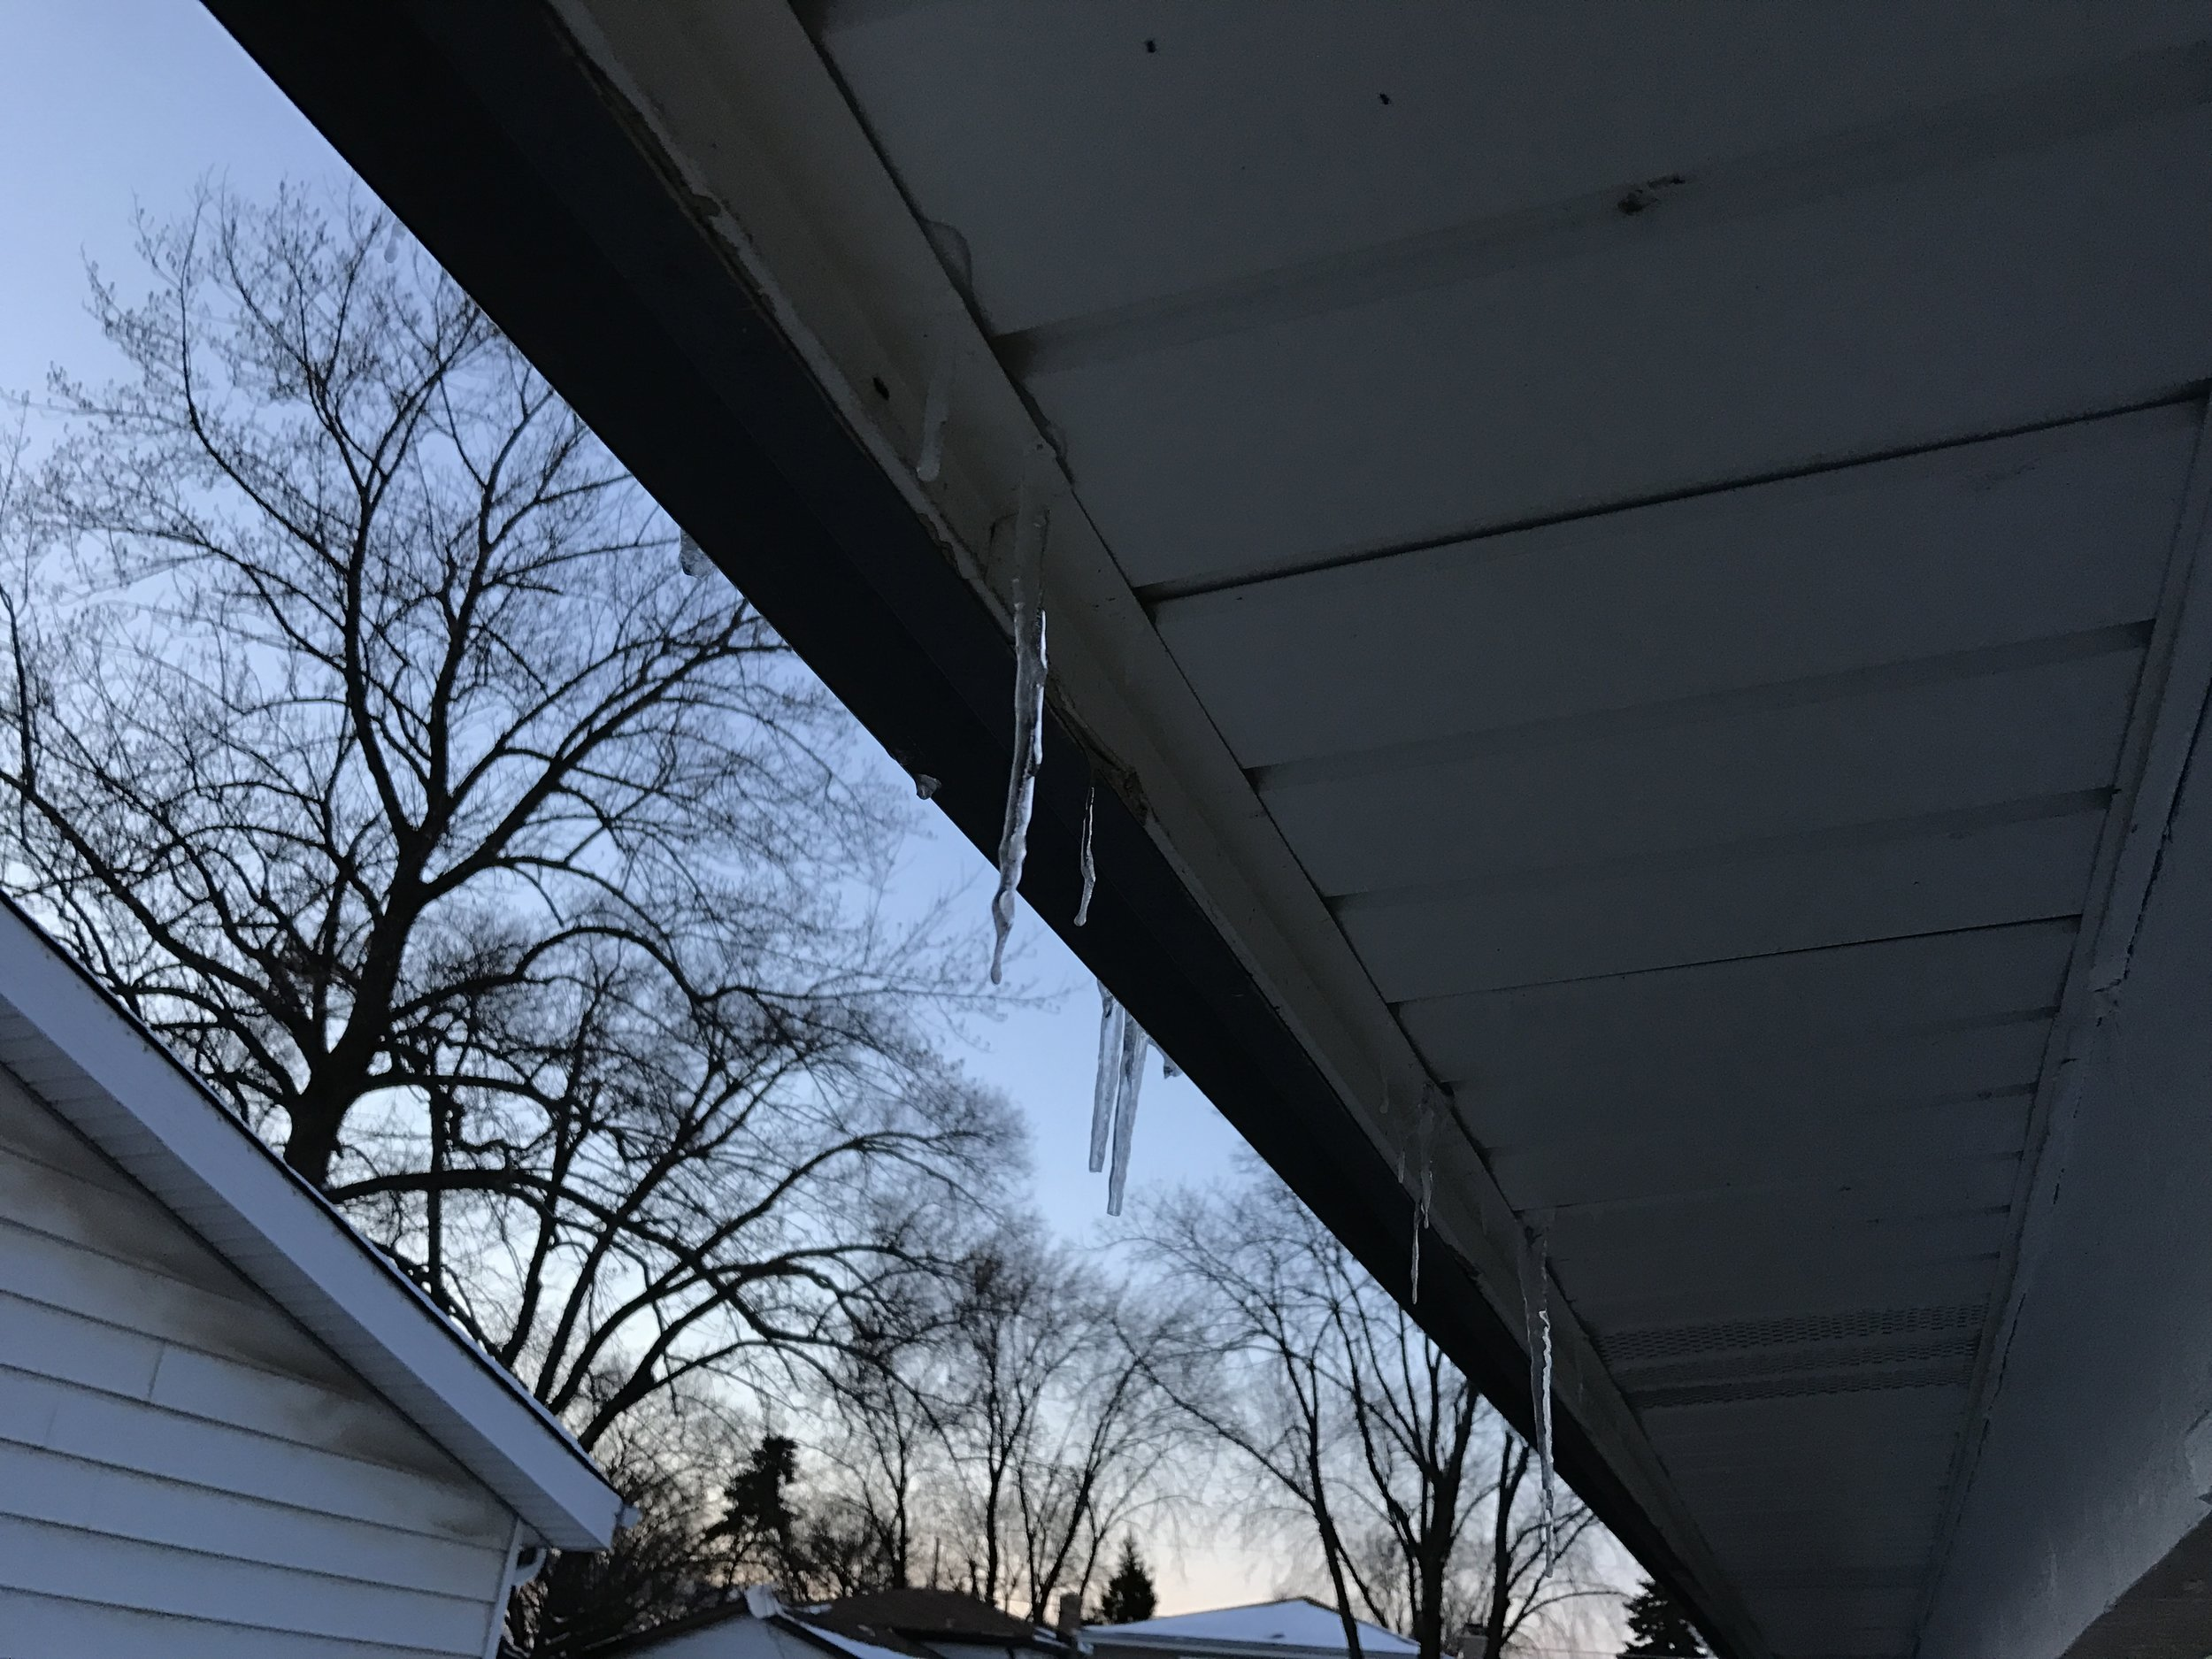 As can be seen in this example, ice damming has cause liquid water to make it's way through the fascia / soffit where it then froze.